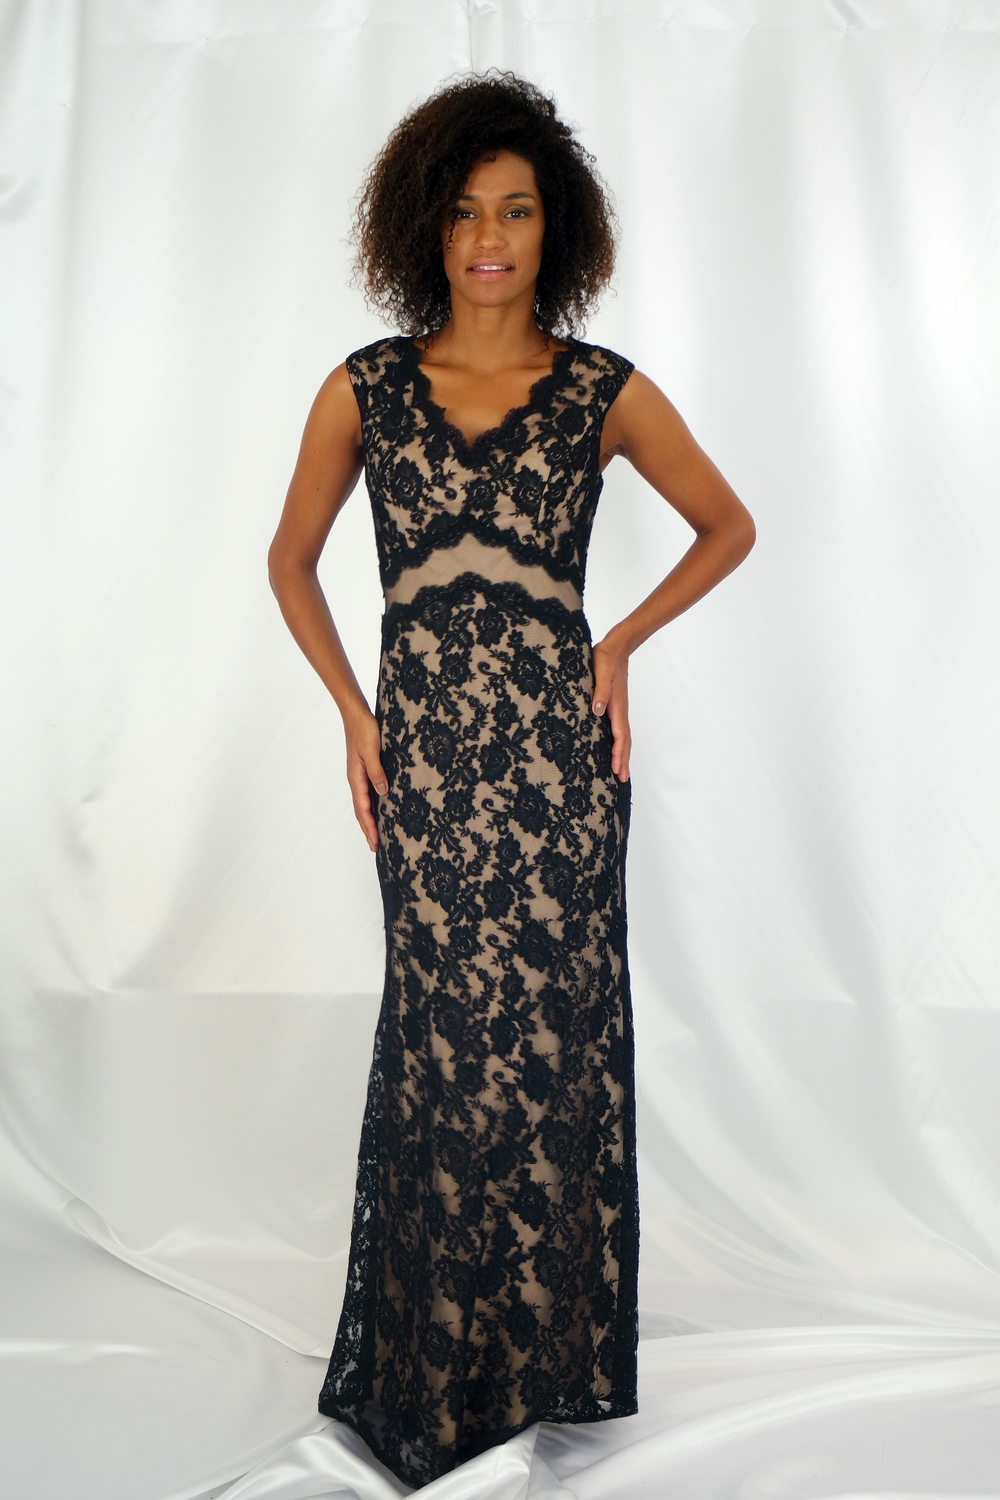 outlet store 4a855 16aac Abito lungo nero in pizzo rebrodé effetto nude look